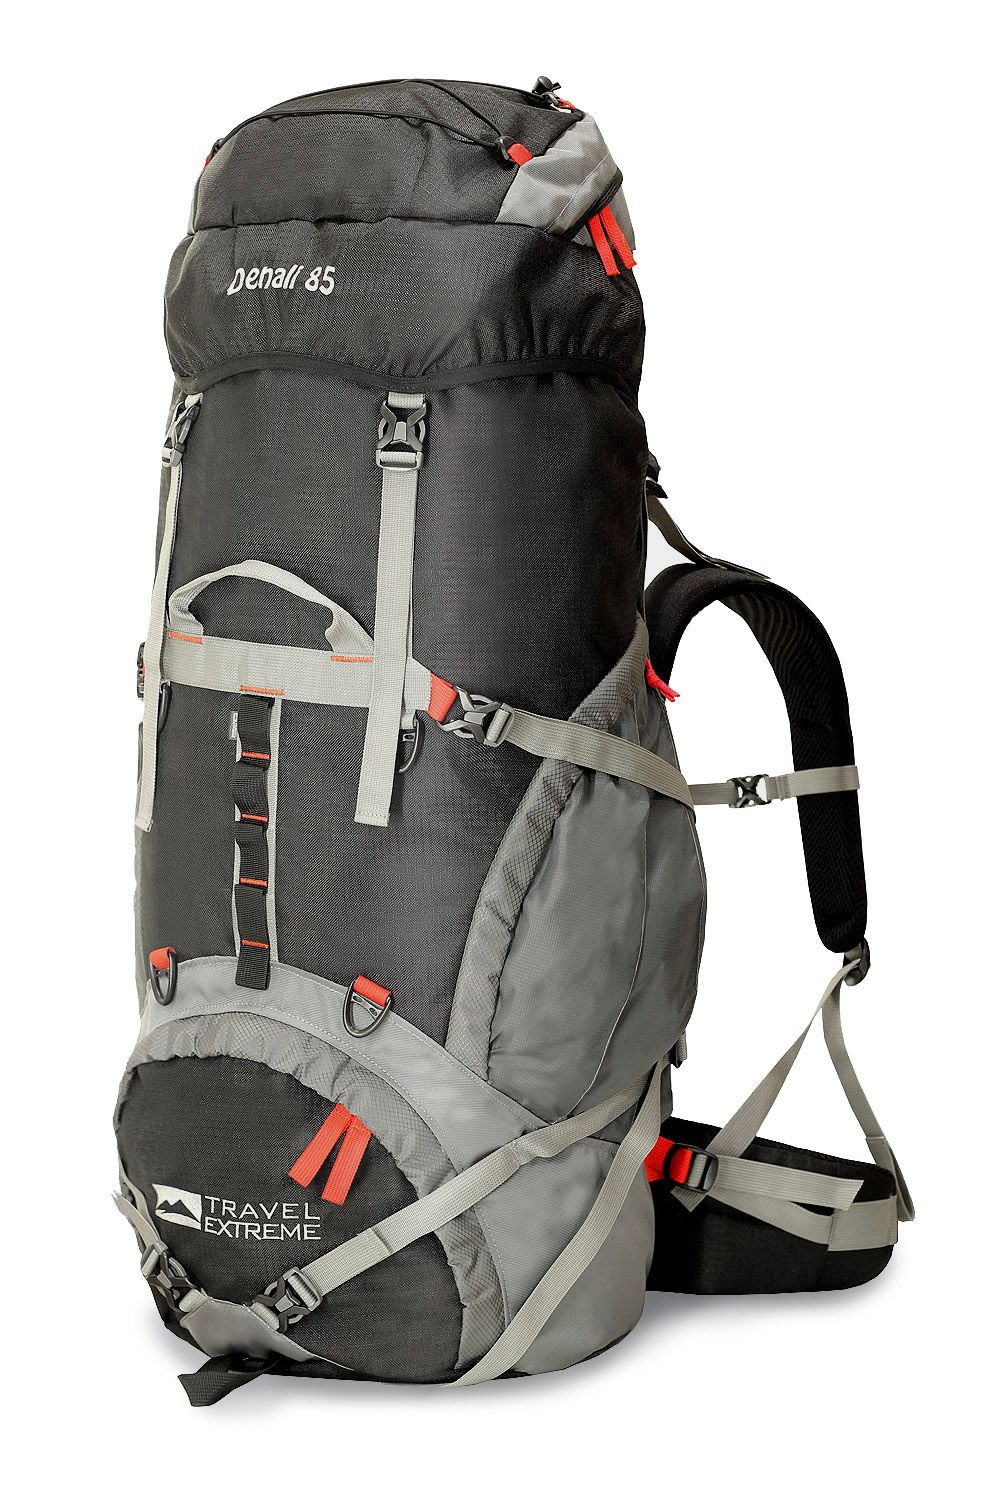 Рюкзак Travel Extreme Denali 85 L